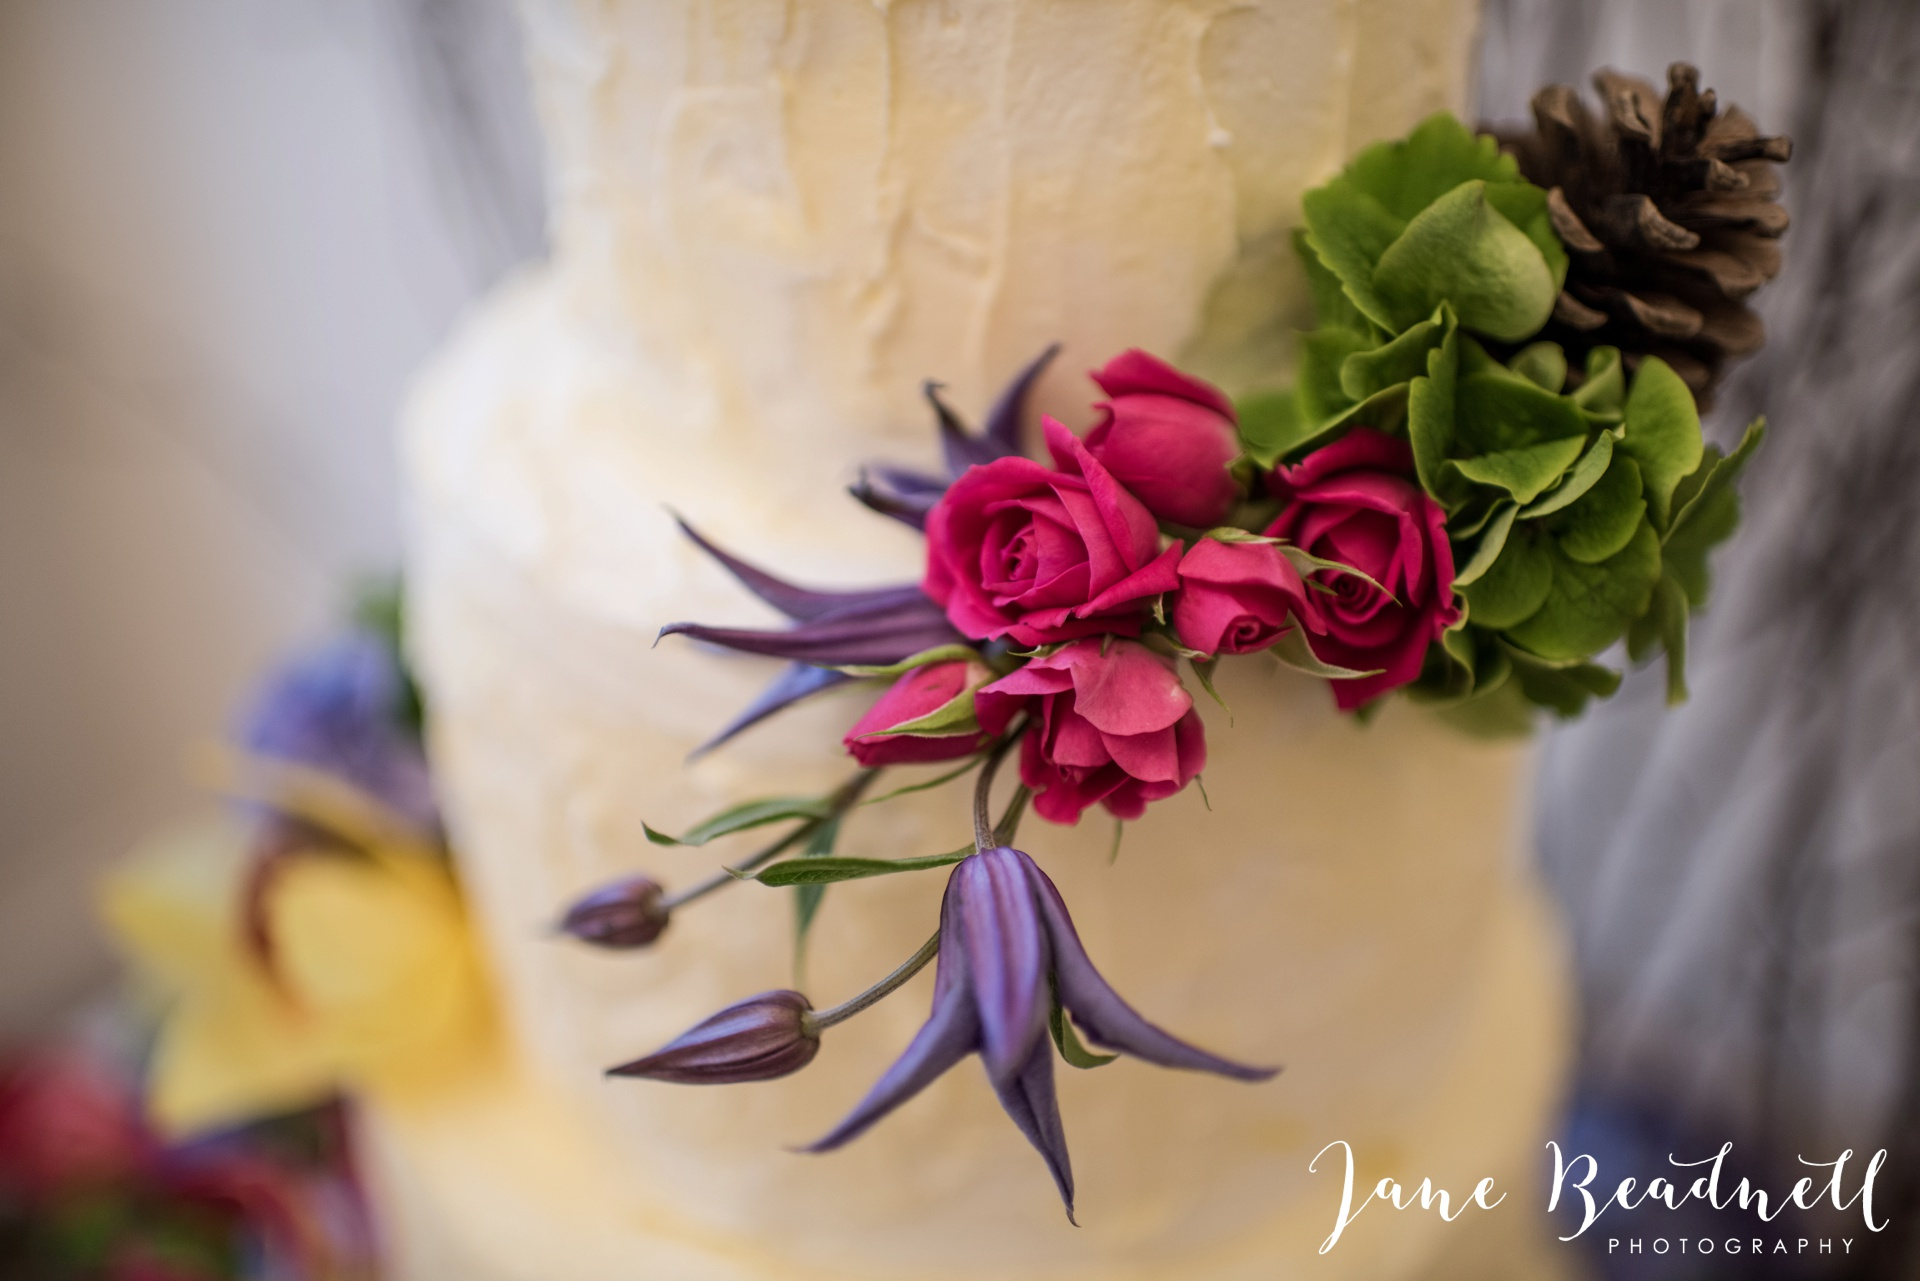 Leafy couture wedding flowers wedding photography by Jane Beadnell photography_0004